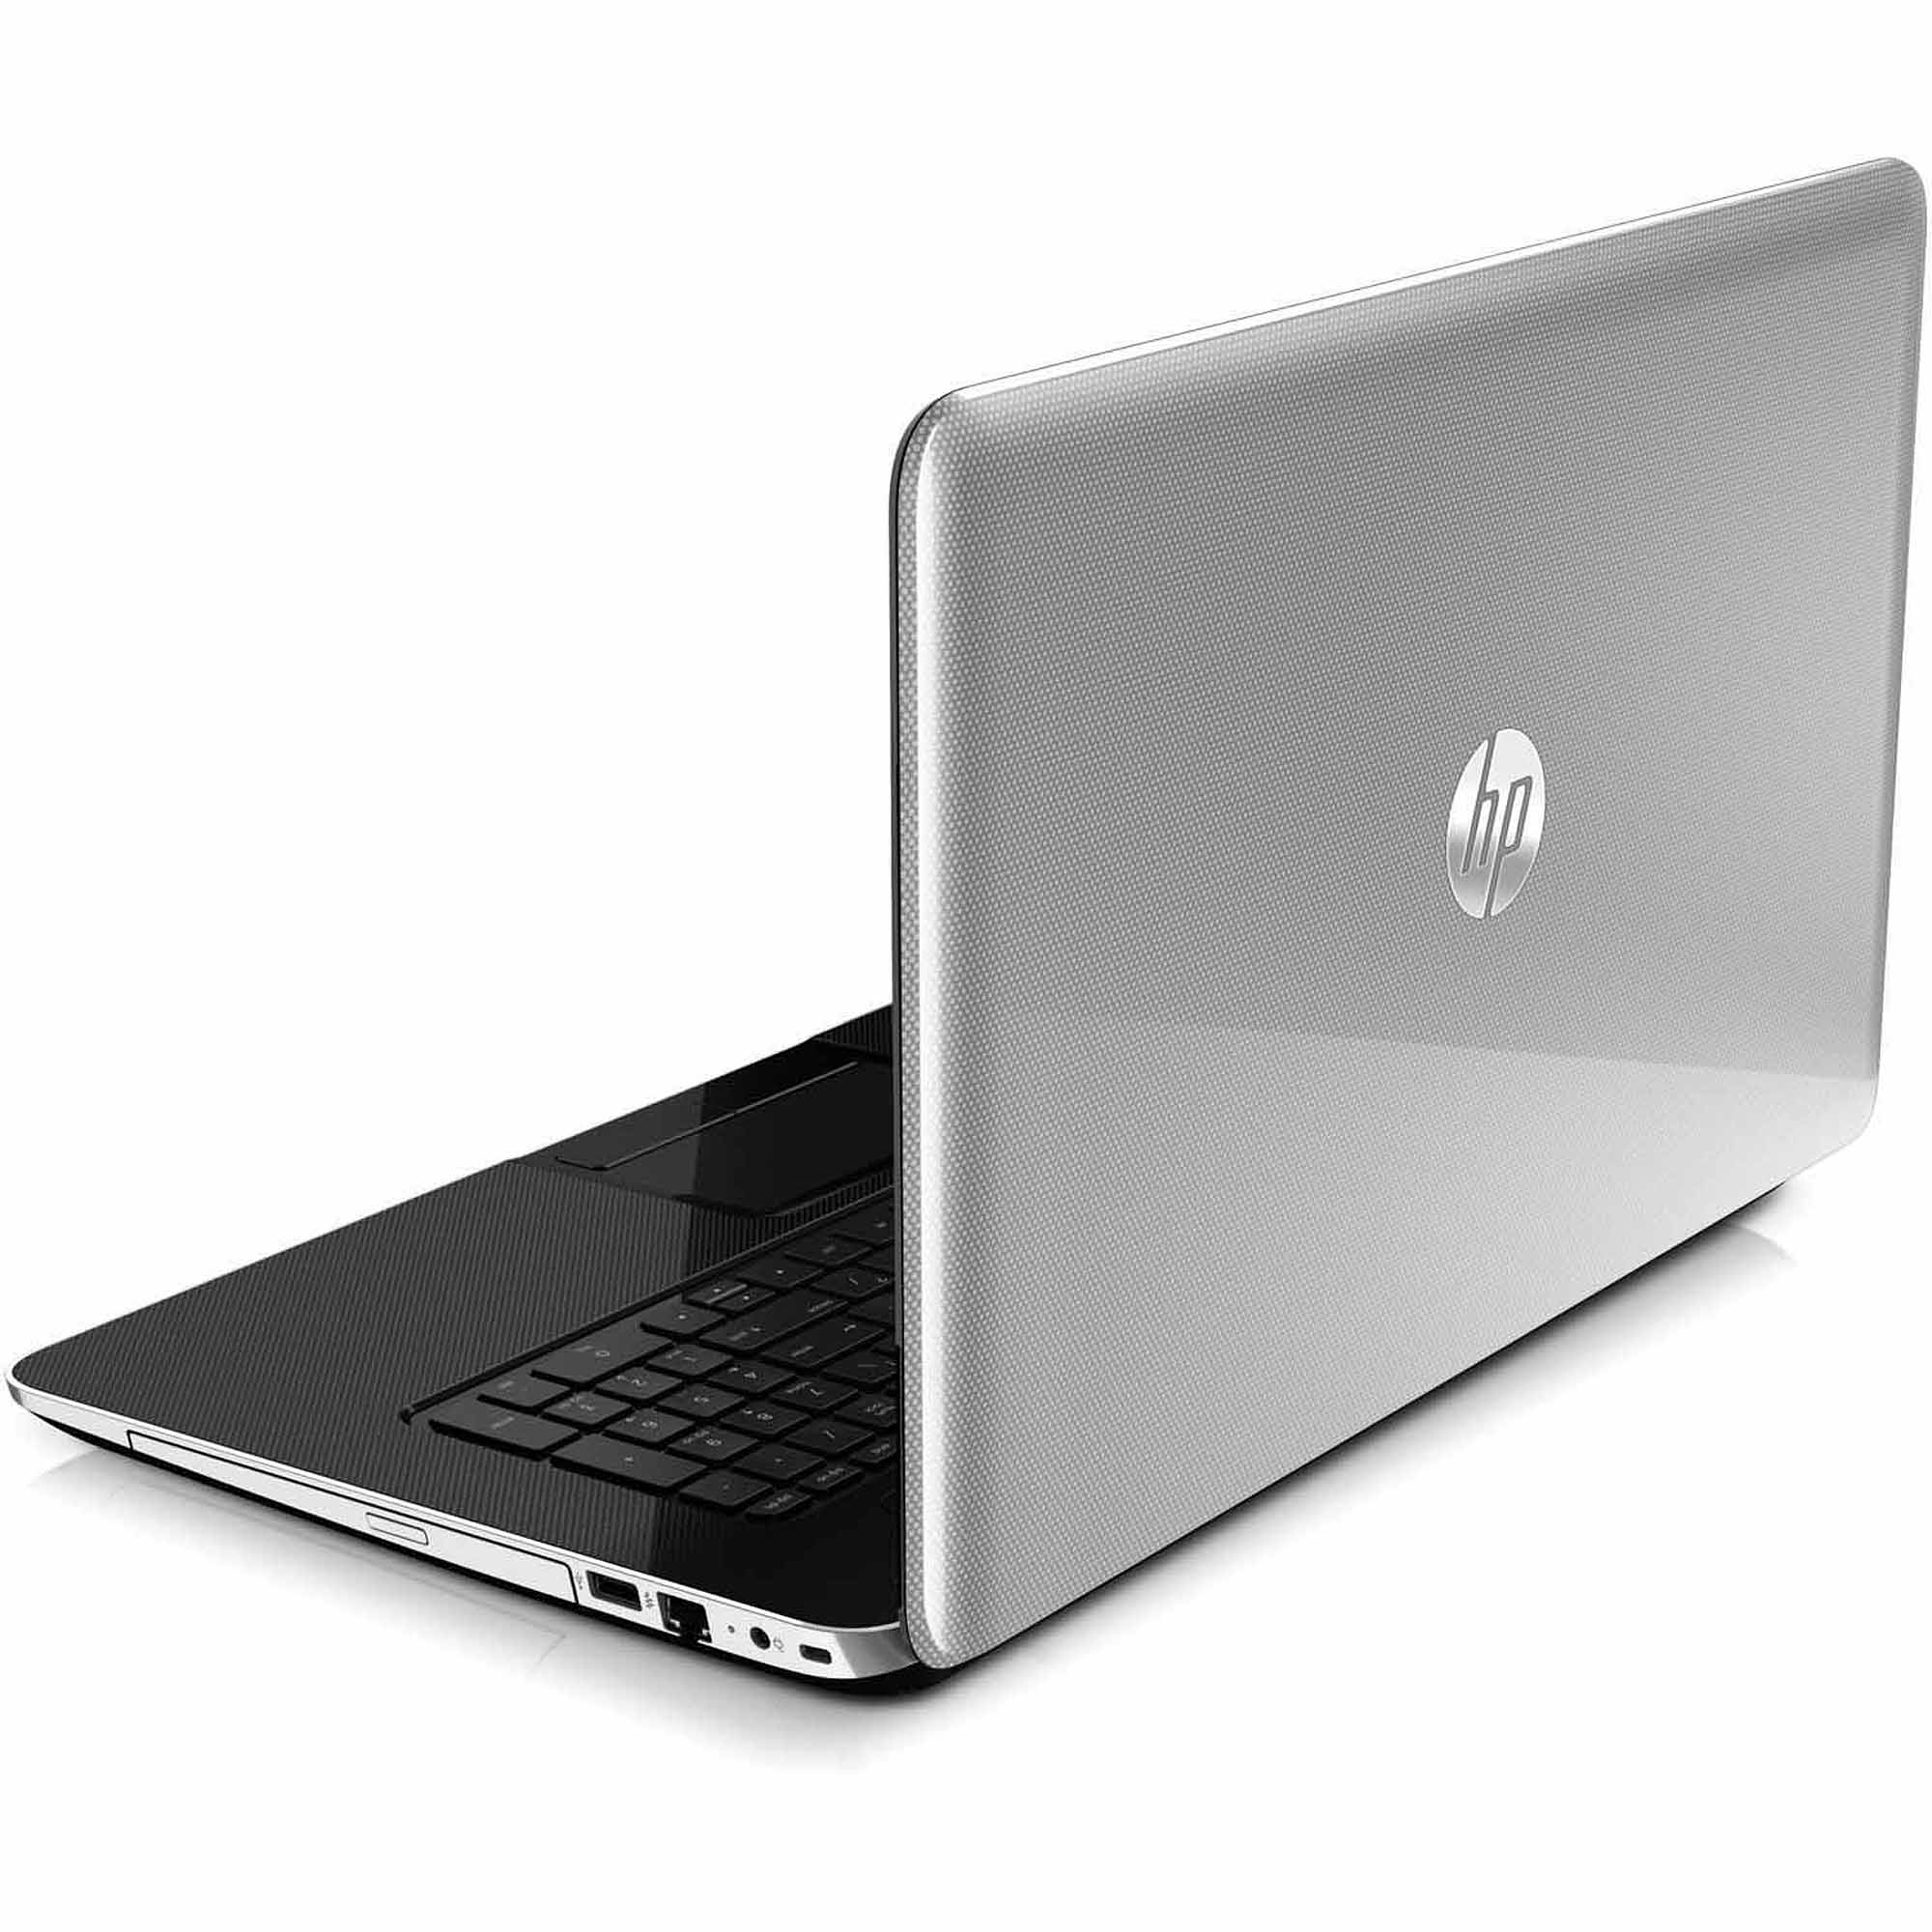 "HP Anodized Silver 17.3"" Pavilion TouchSmart 17-e150us Laptop PC with AMD A8-5550M Quad-Core Processor, 6GB Memory, Touchscreen, 750GB Hard Drive and Windows 8.1"